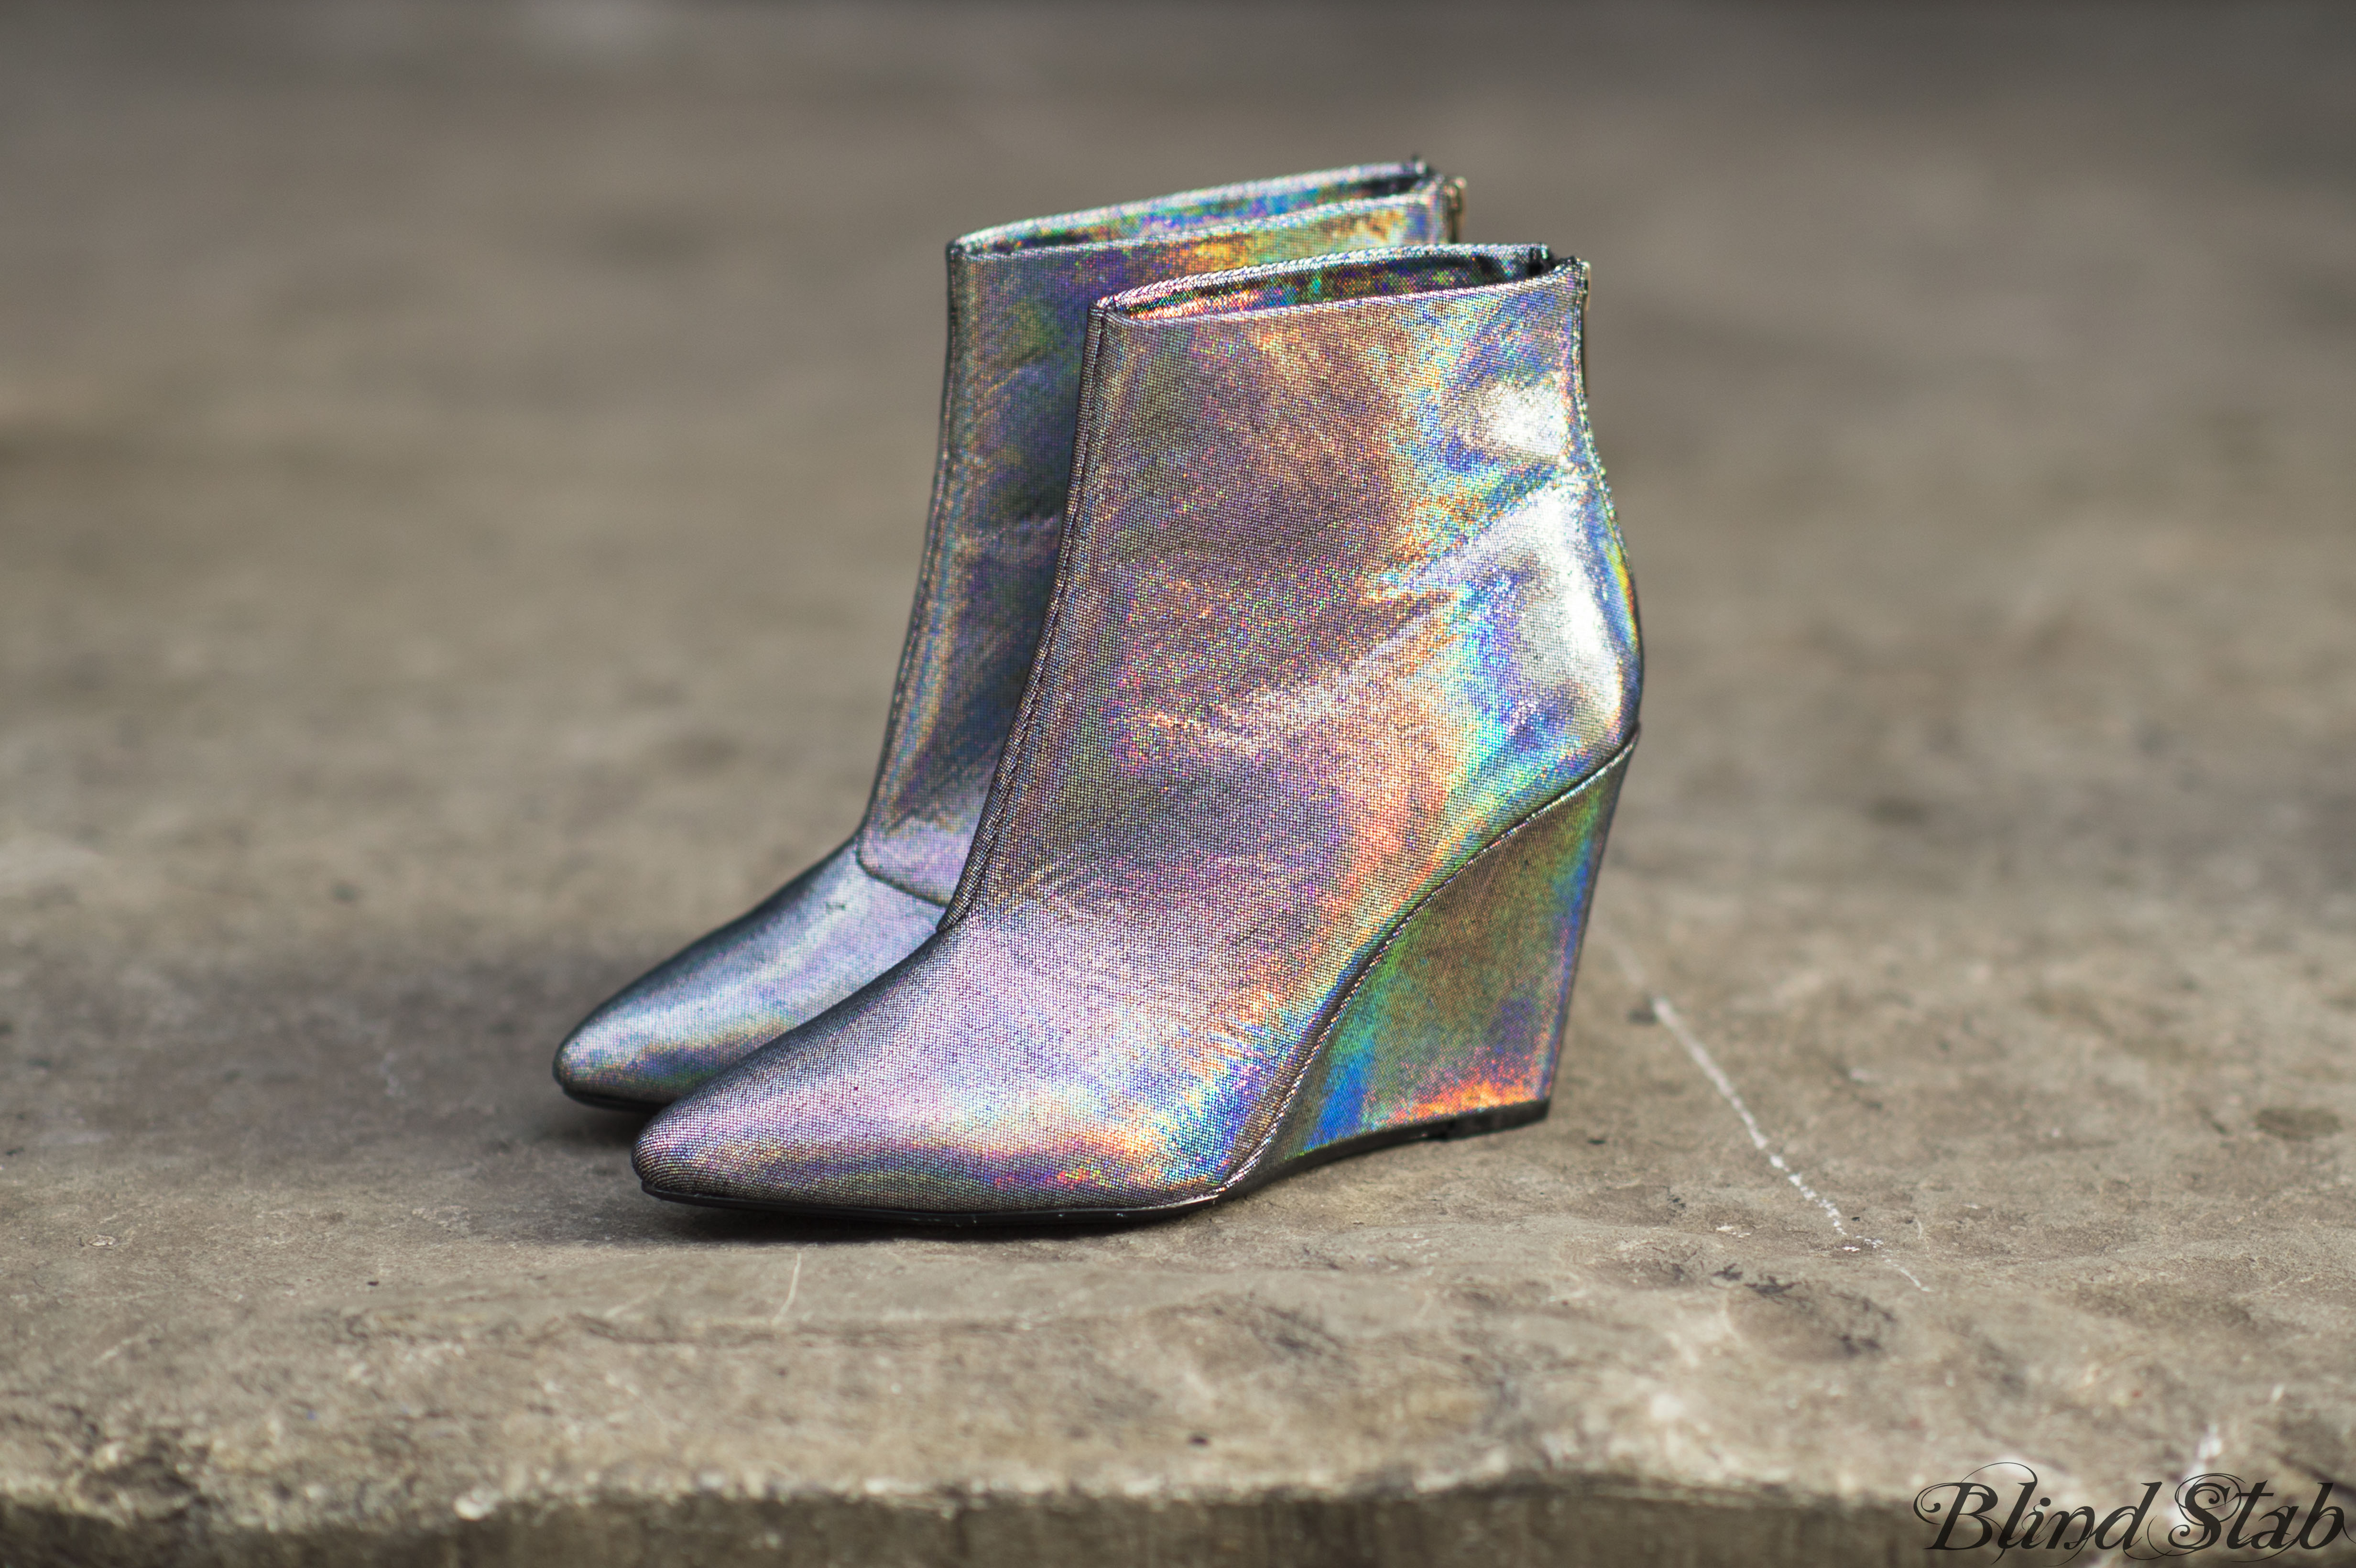 Blind Stab Dana Suchow Hologram Wedge Ankle Boots